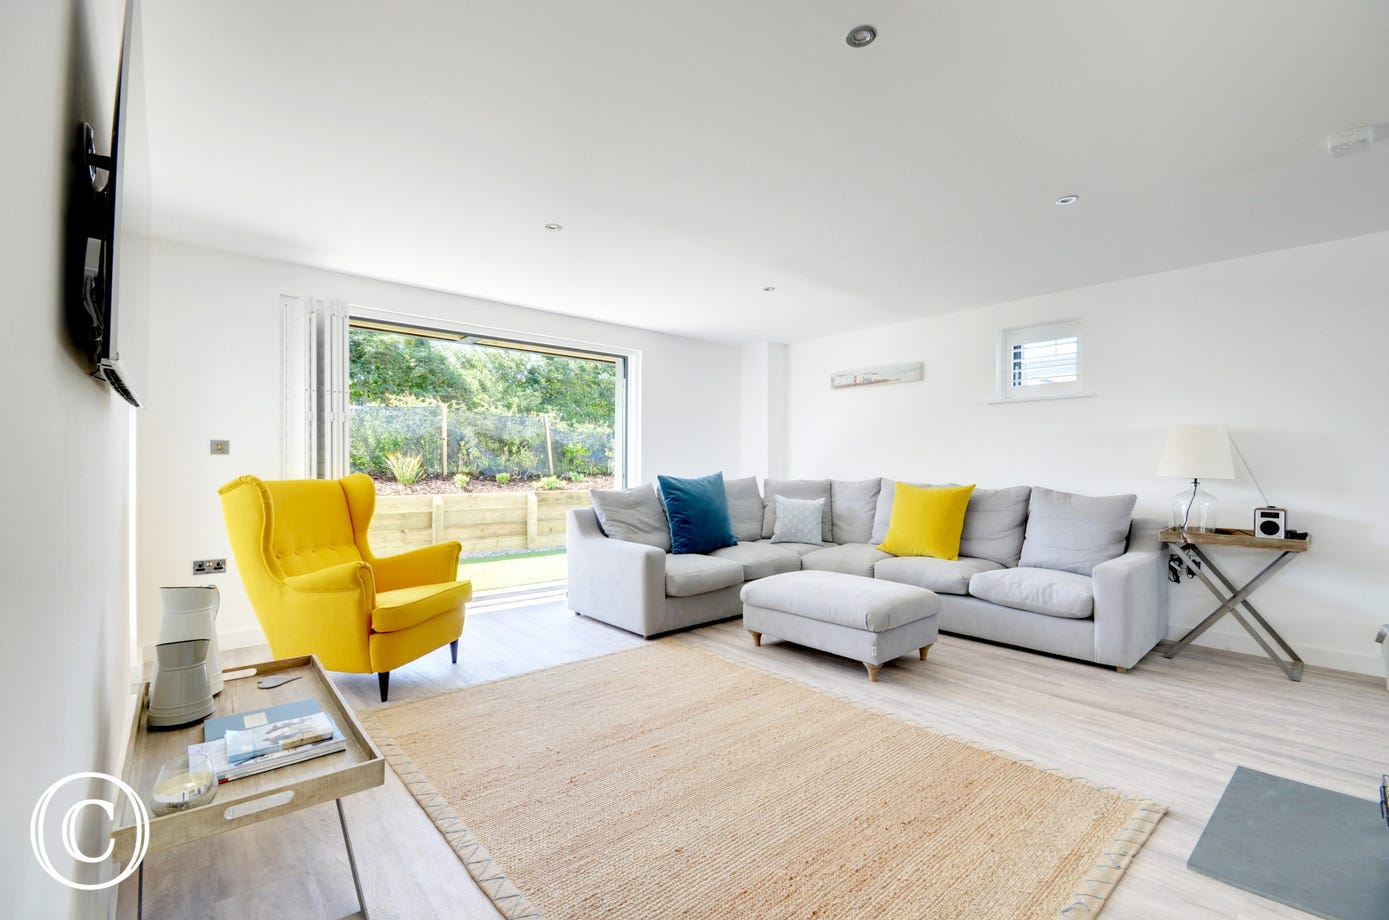 The impressive, bright and spacious open plan living area